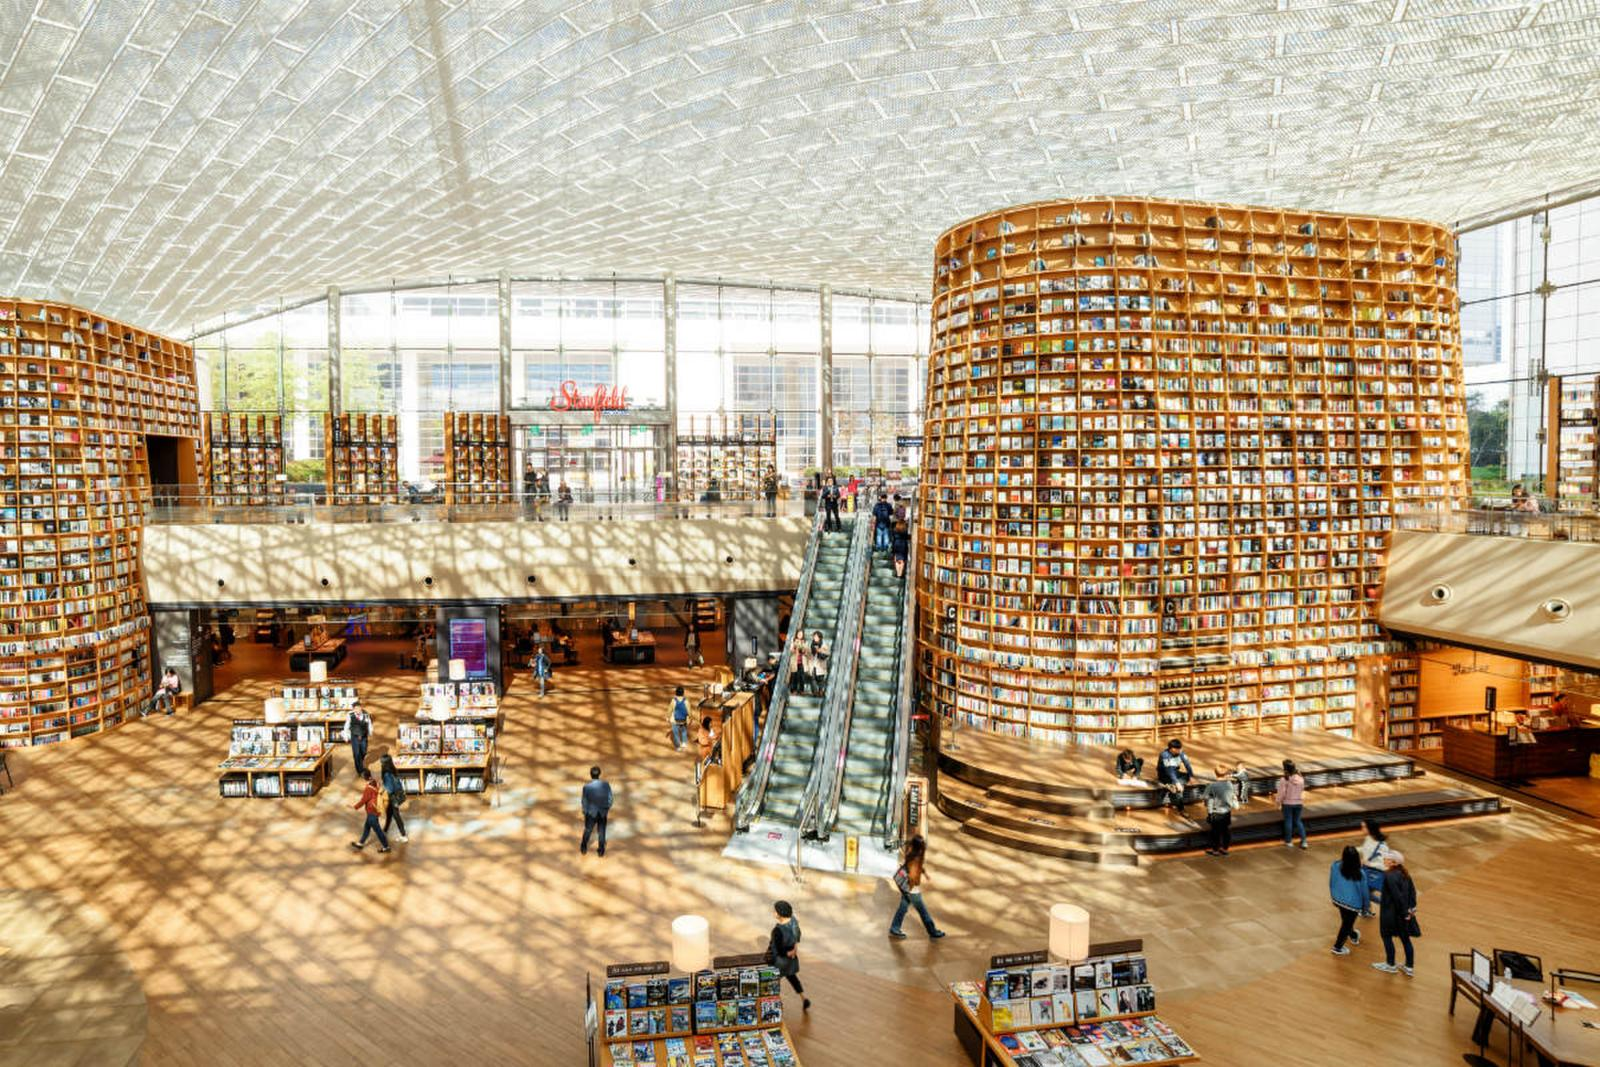 starfield-seoul - libraries,qatar national library